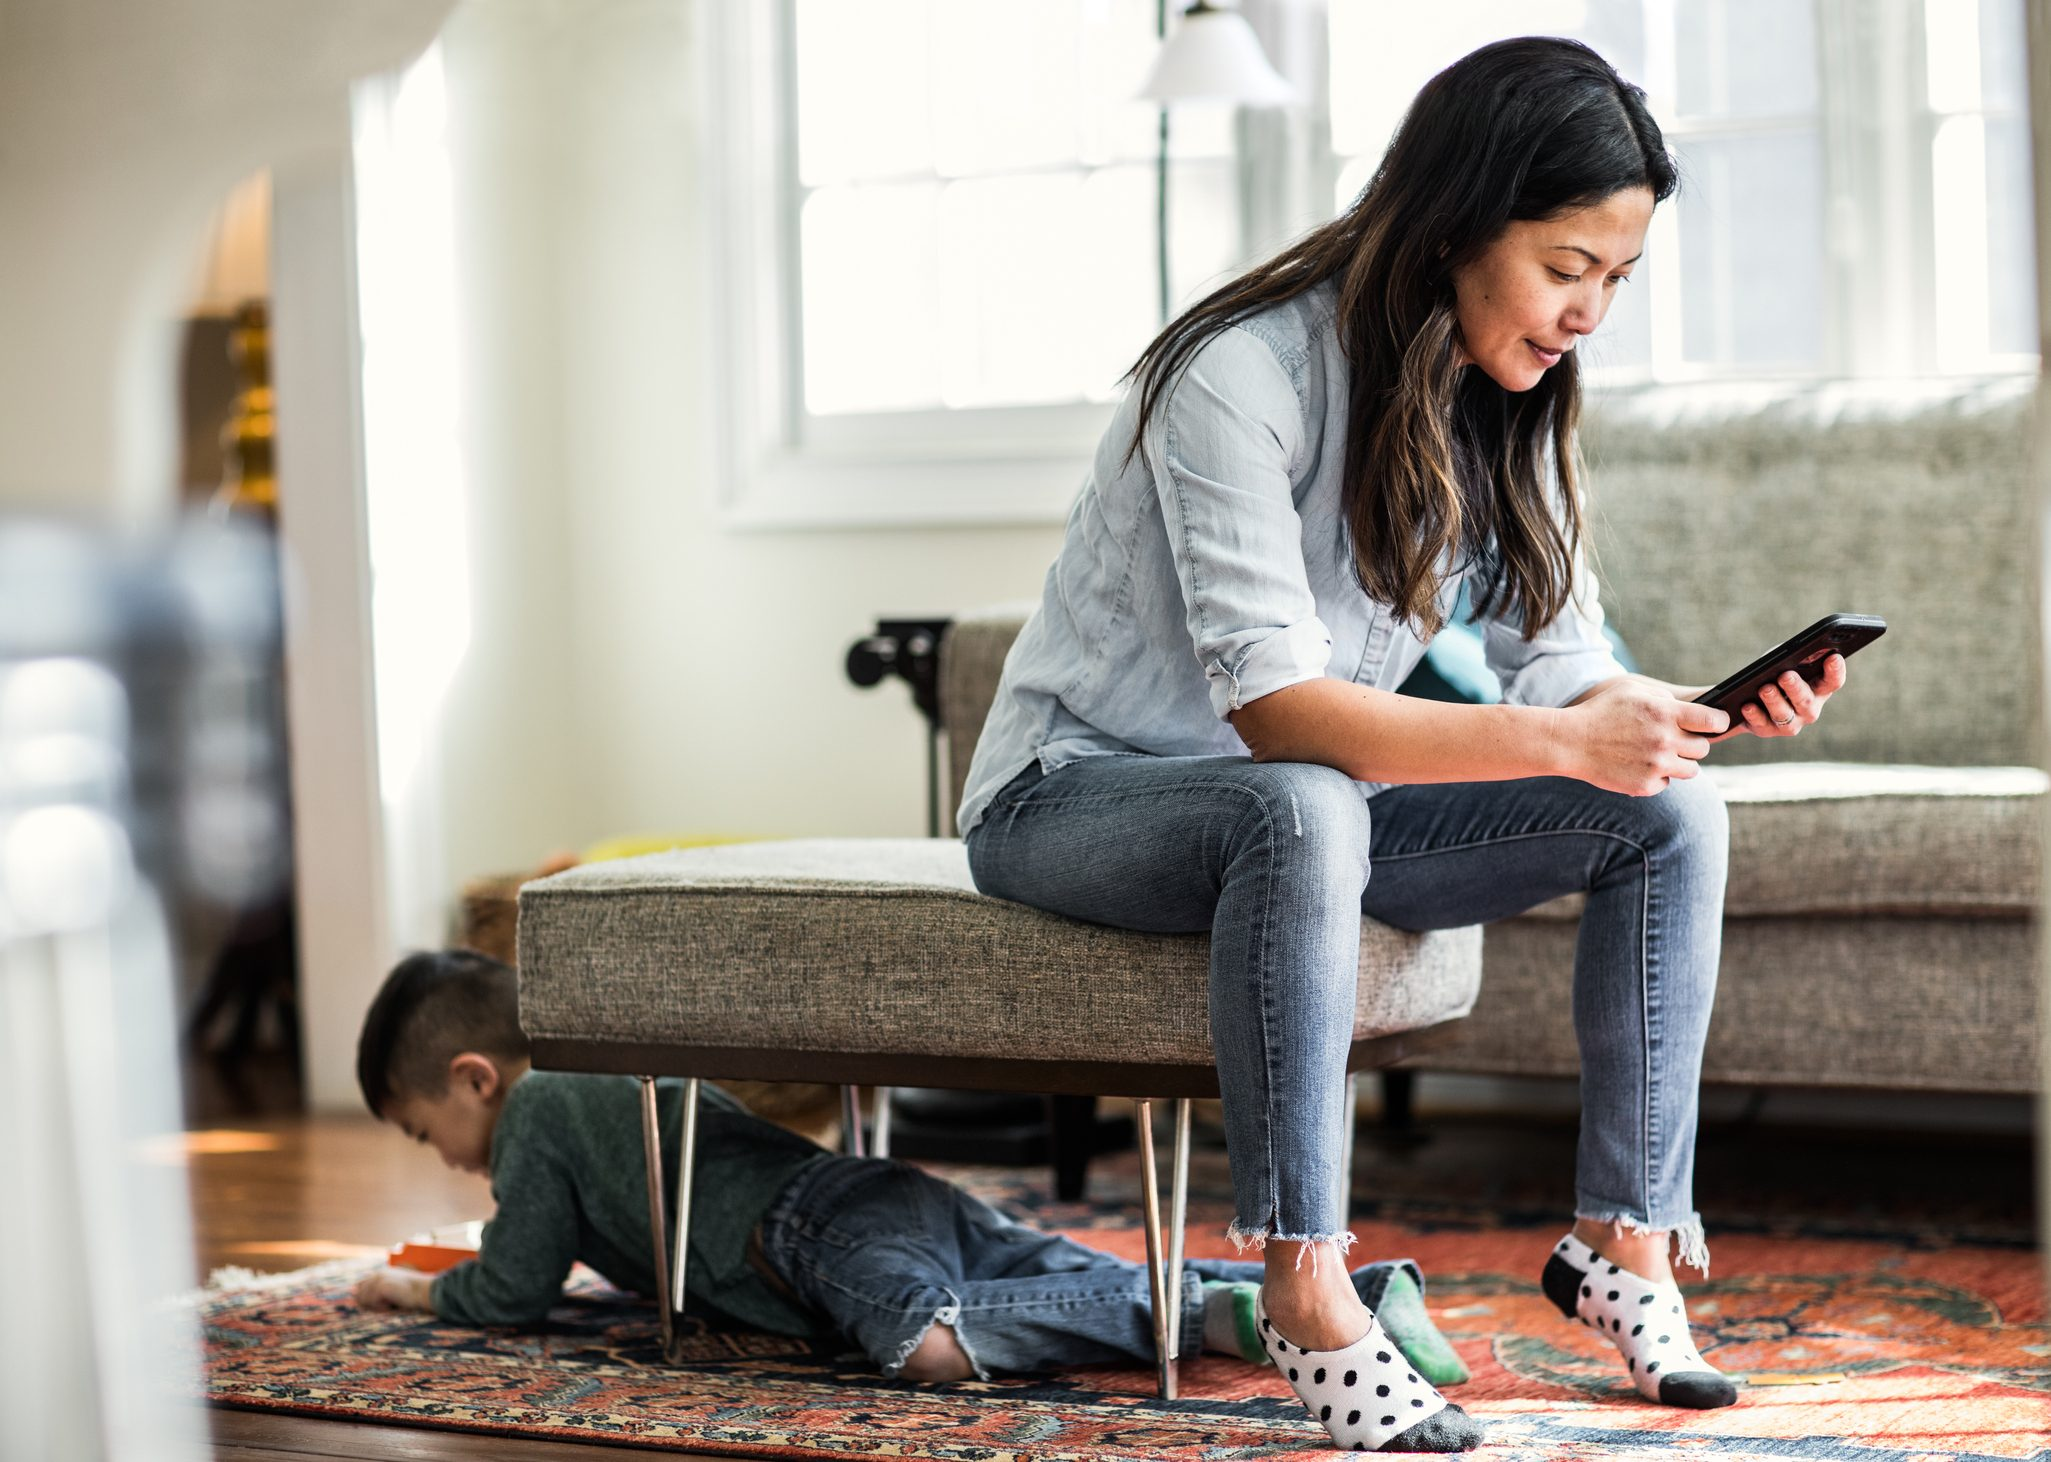 Woman using smartphone at home with child in background